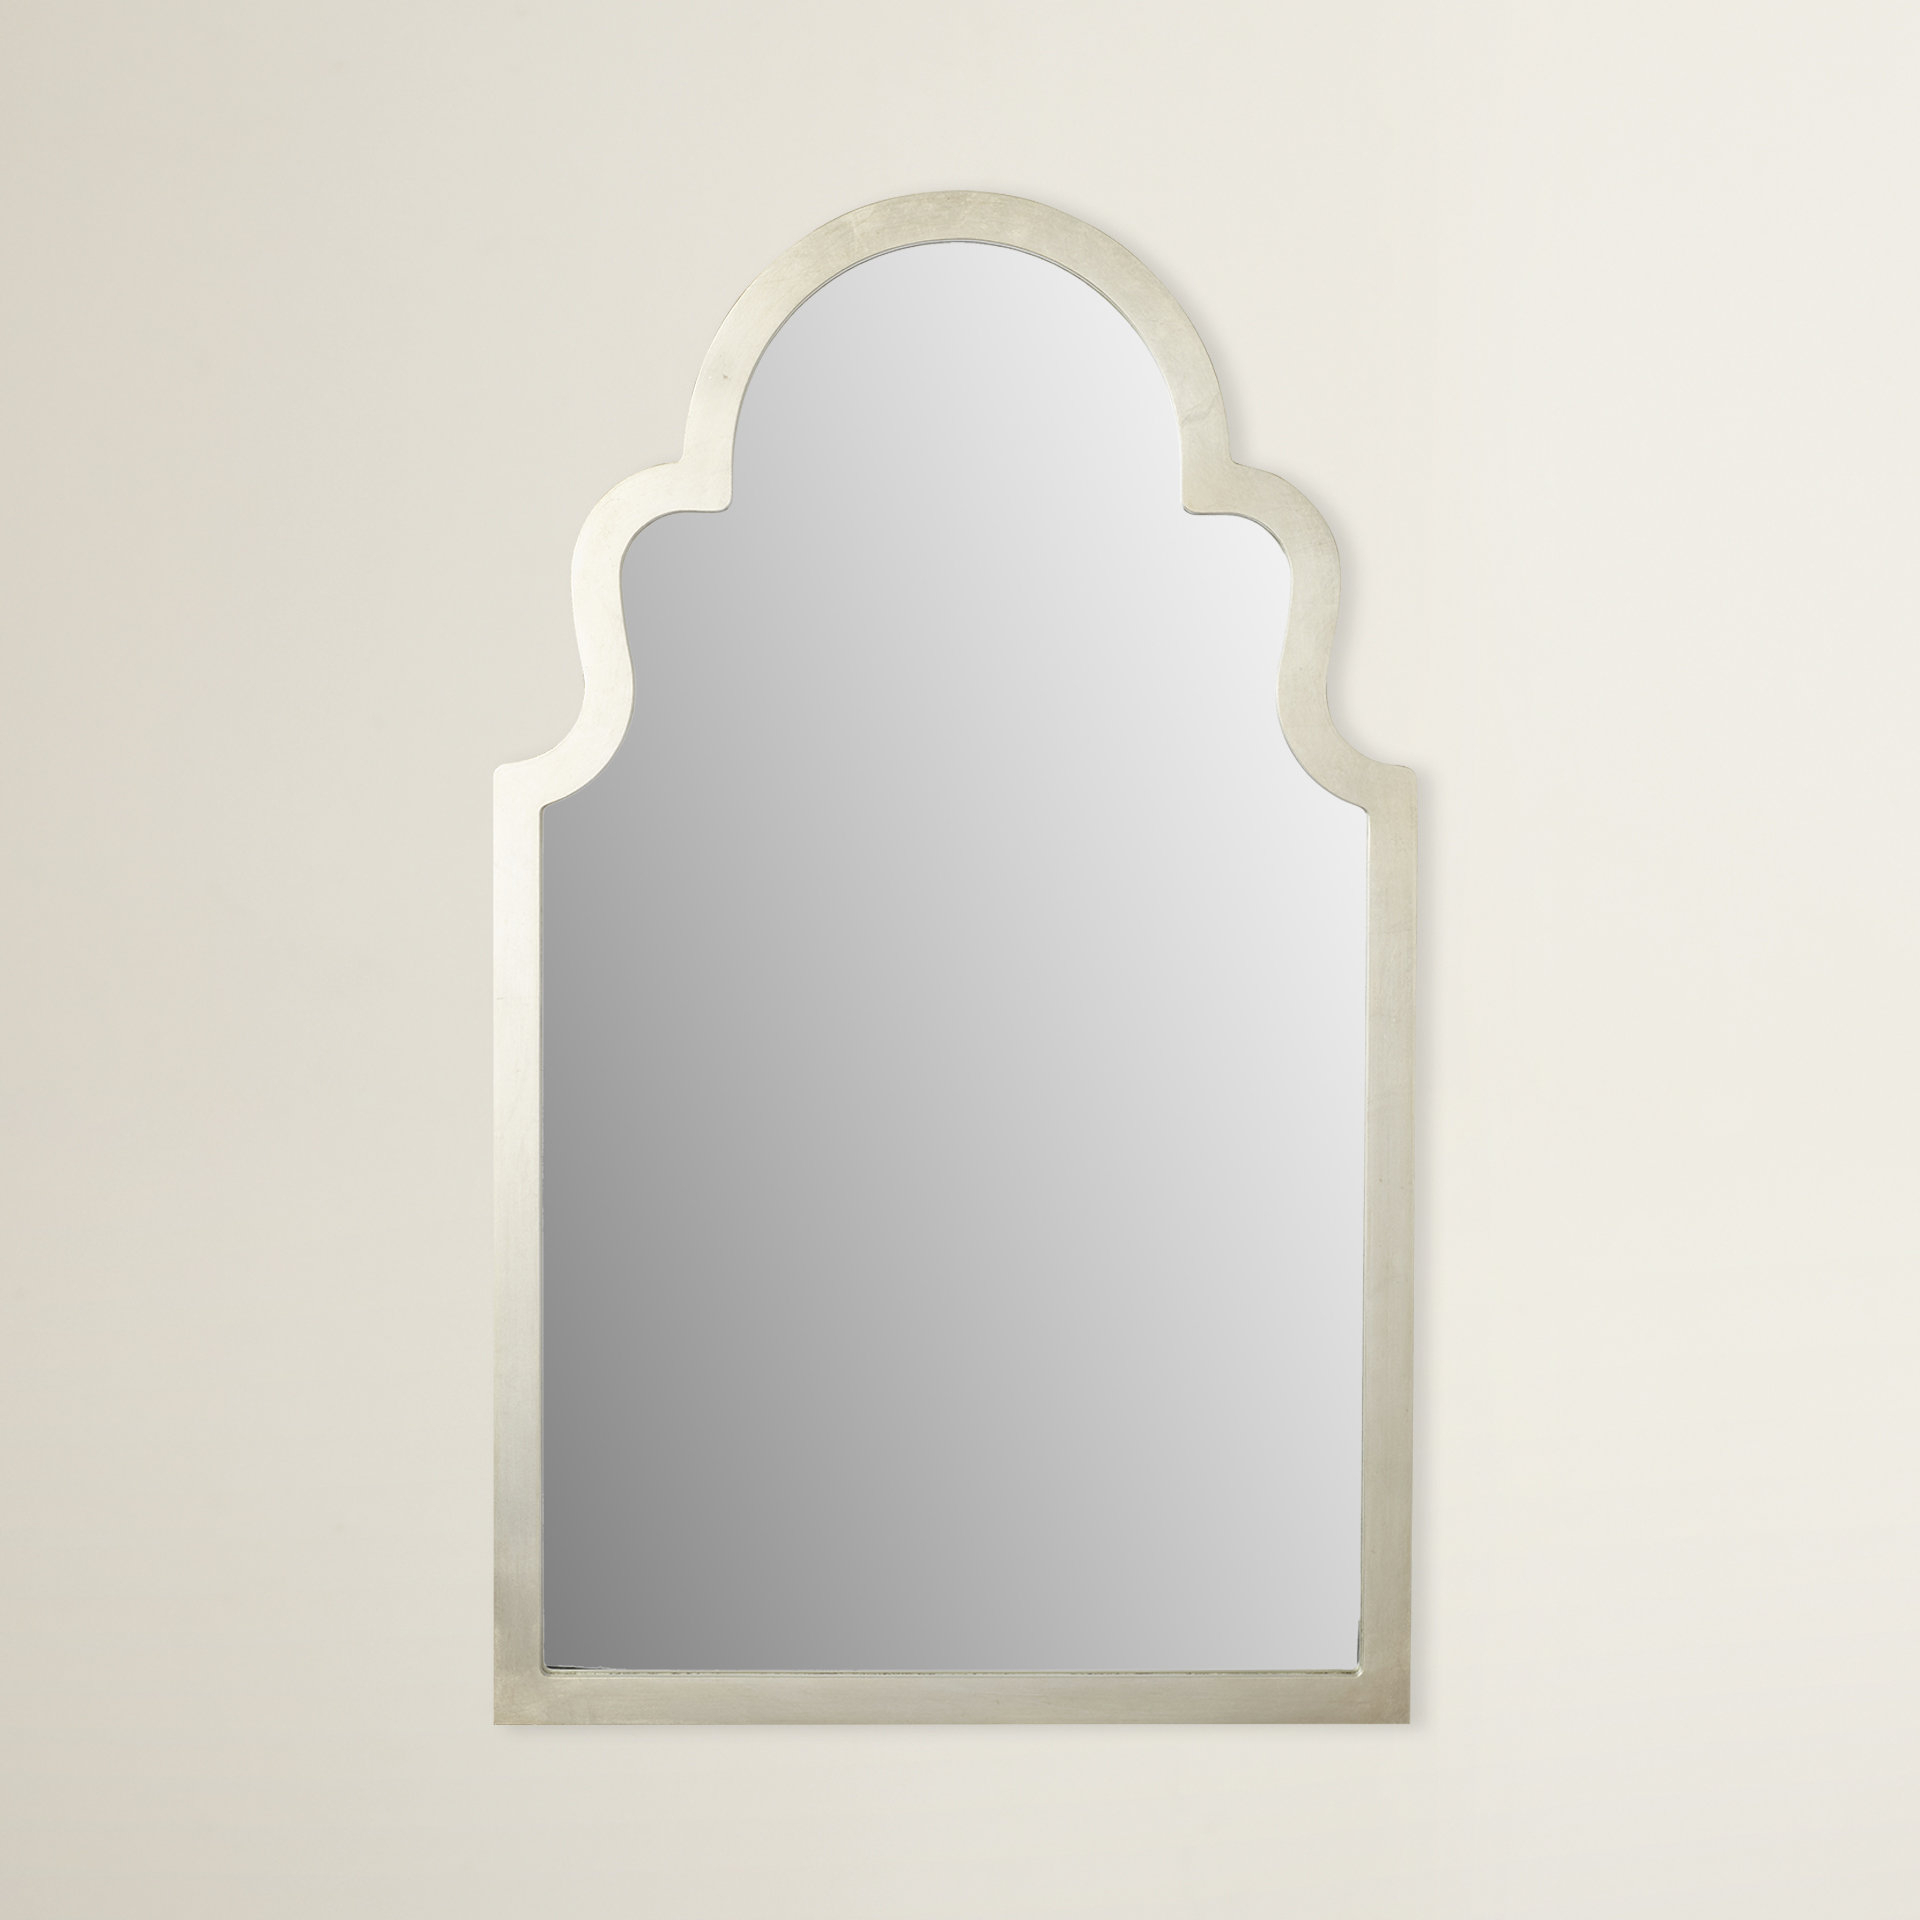 Arch Top Vertical Wall Mirror Intended For Fifi Contemporary Arch Wall Mirrors (View 7 of 20)